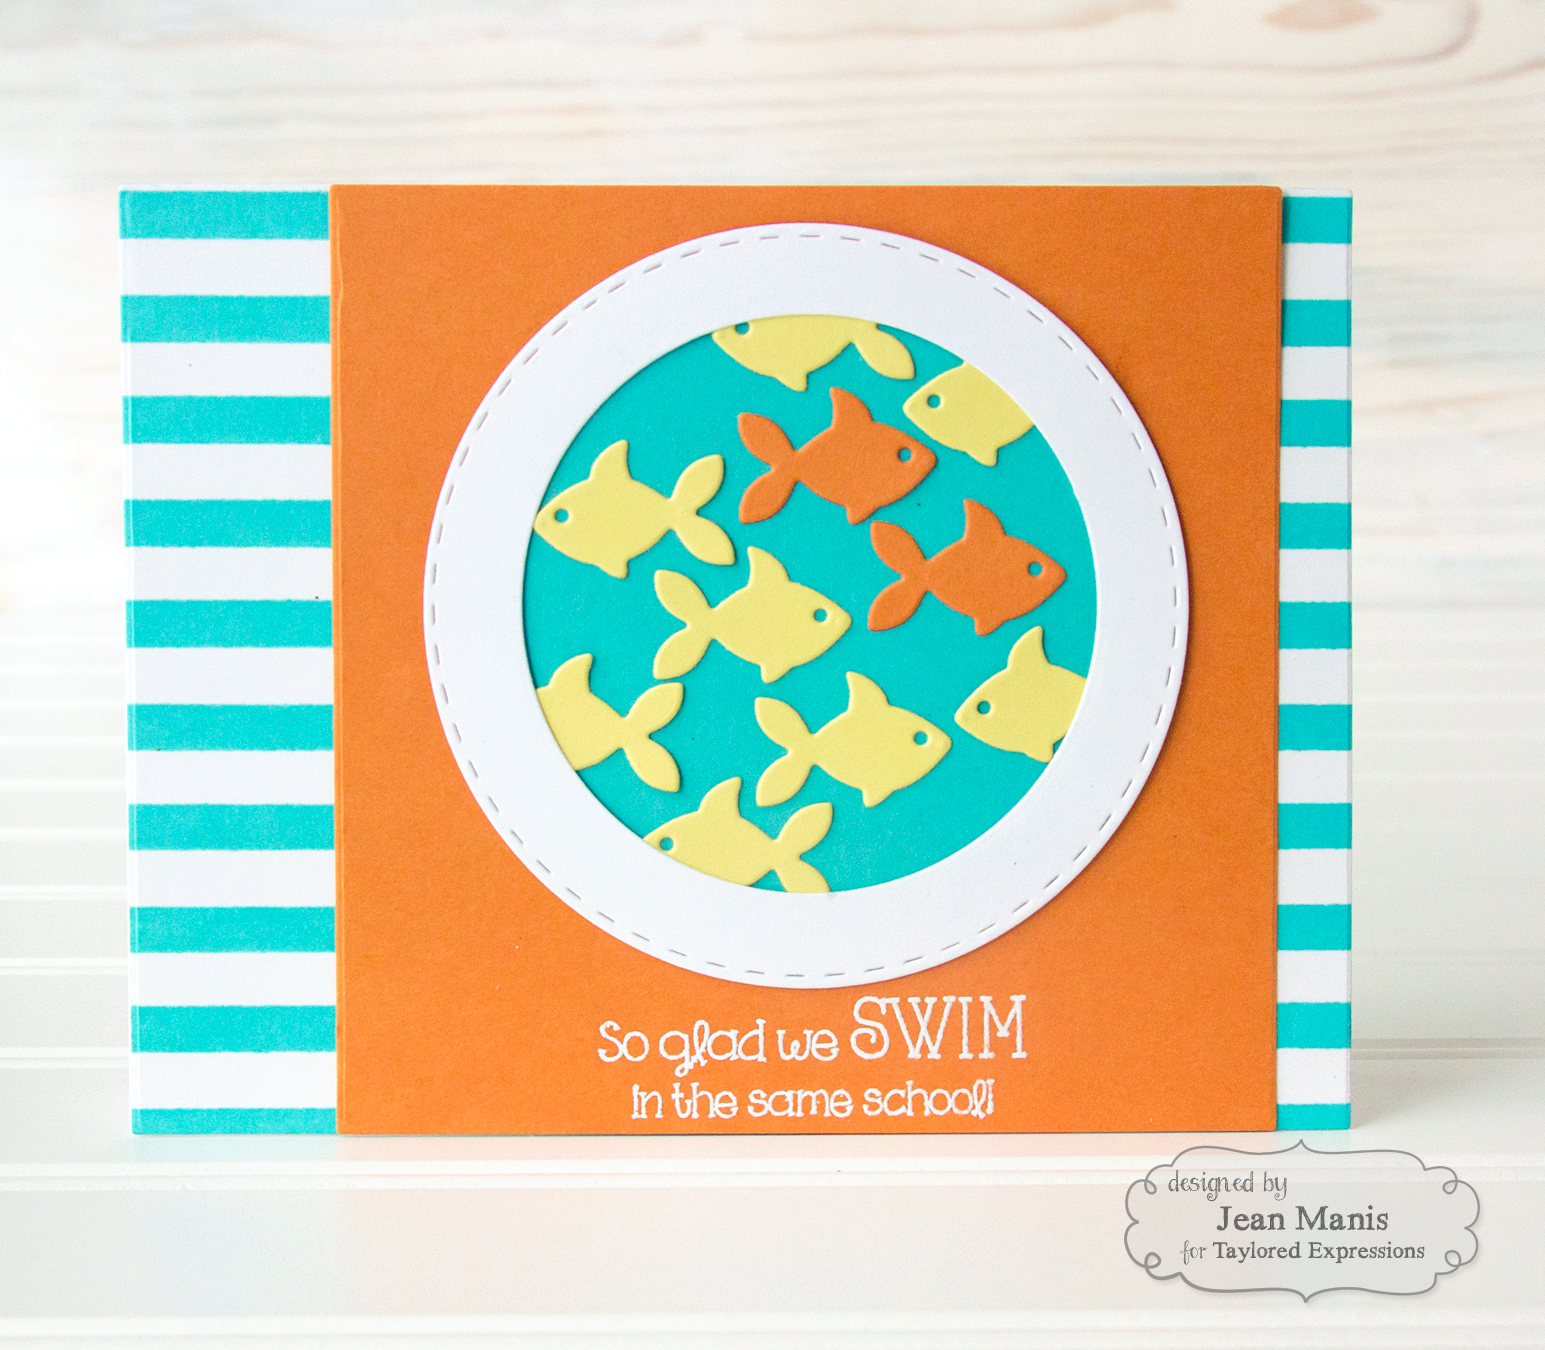 Taylored Expressions Friendship Die-cut Card